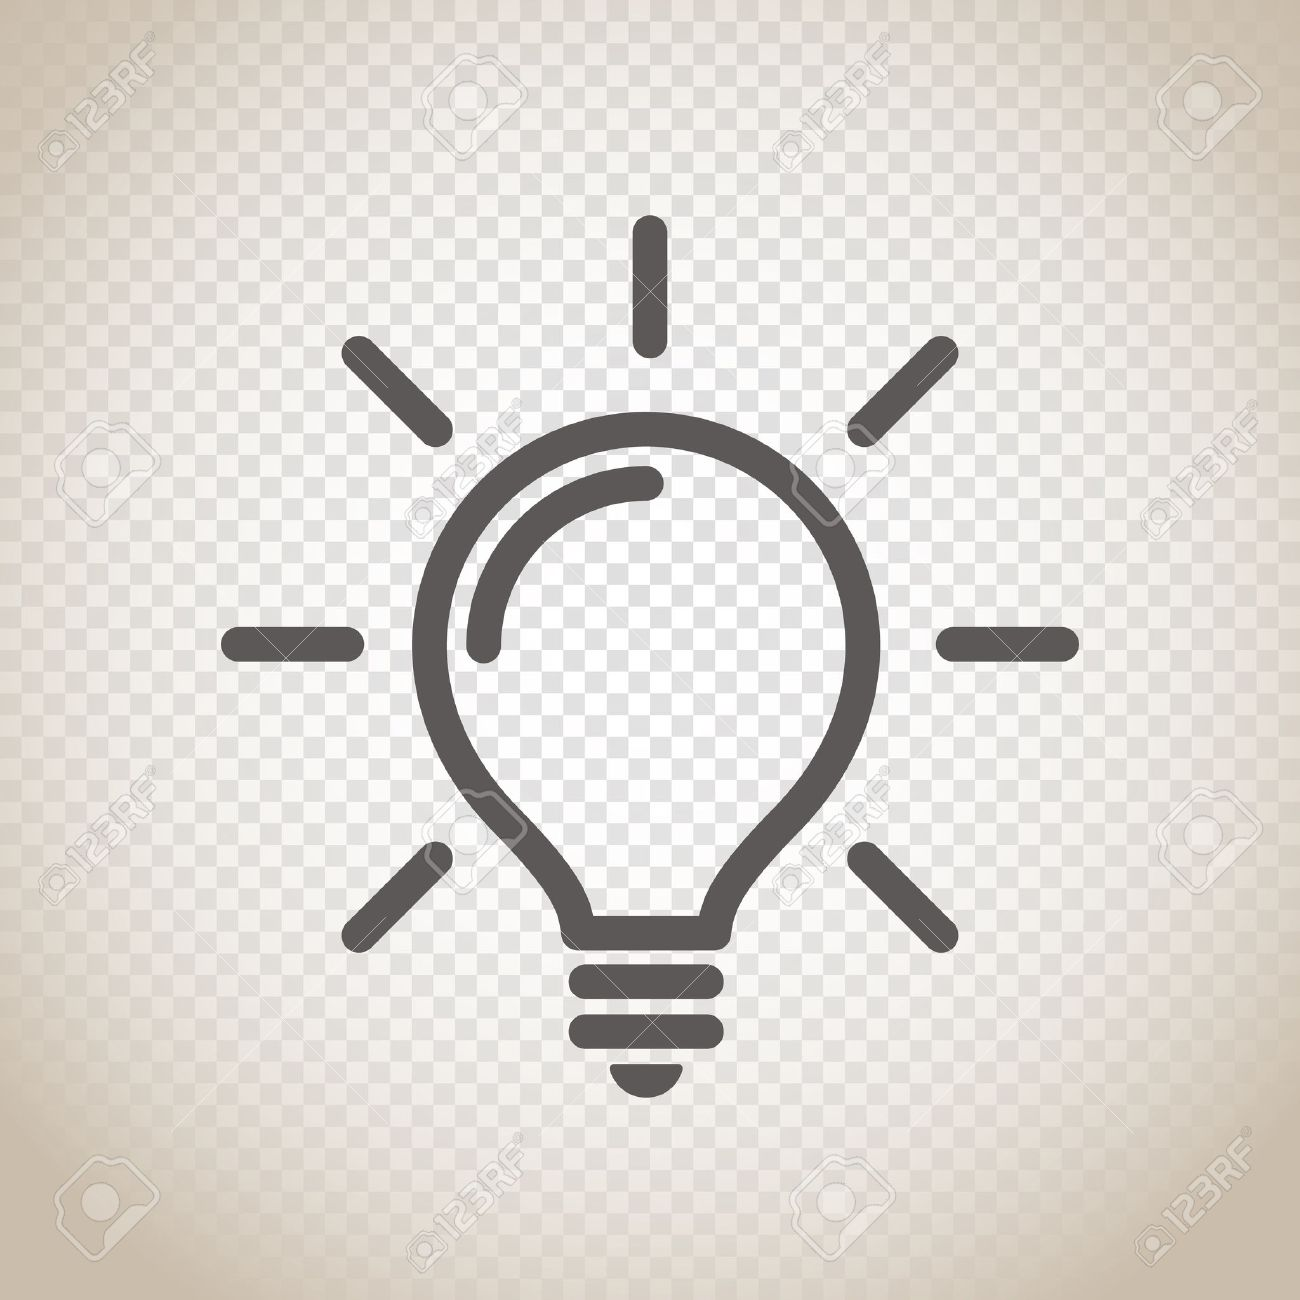 Light bulb vector icon on transparent background - 66903595